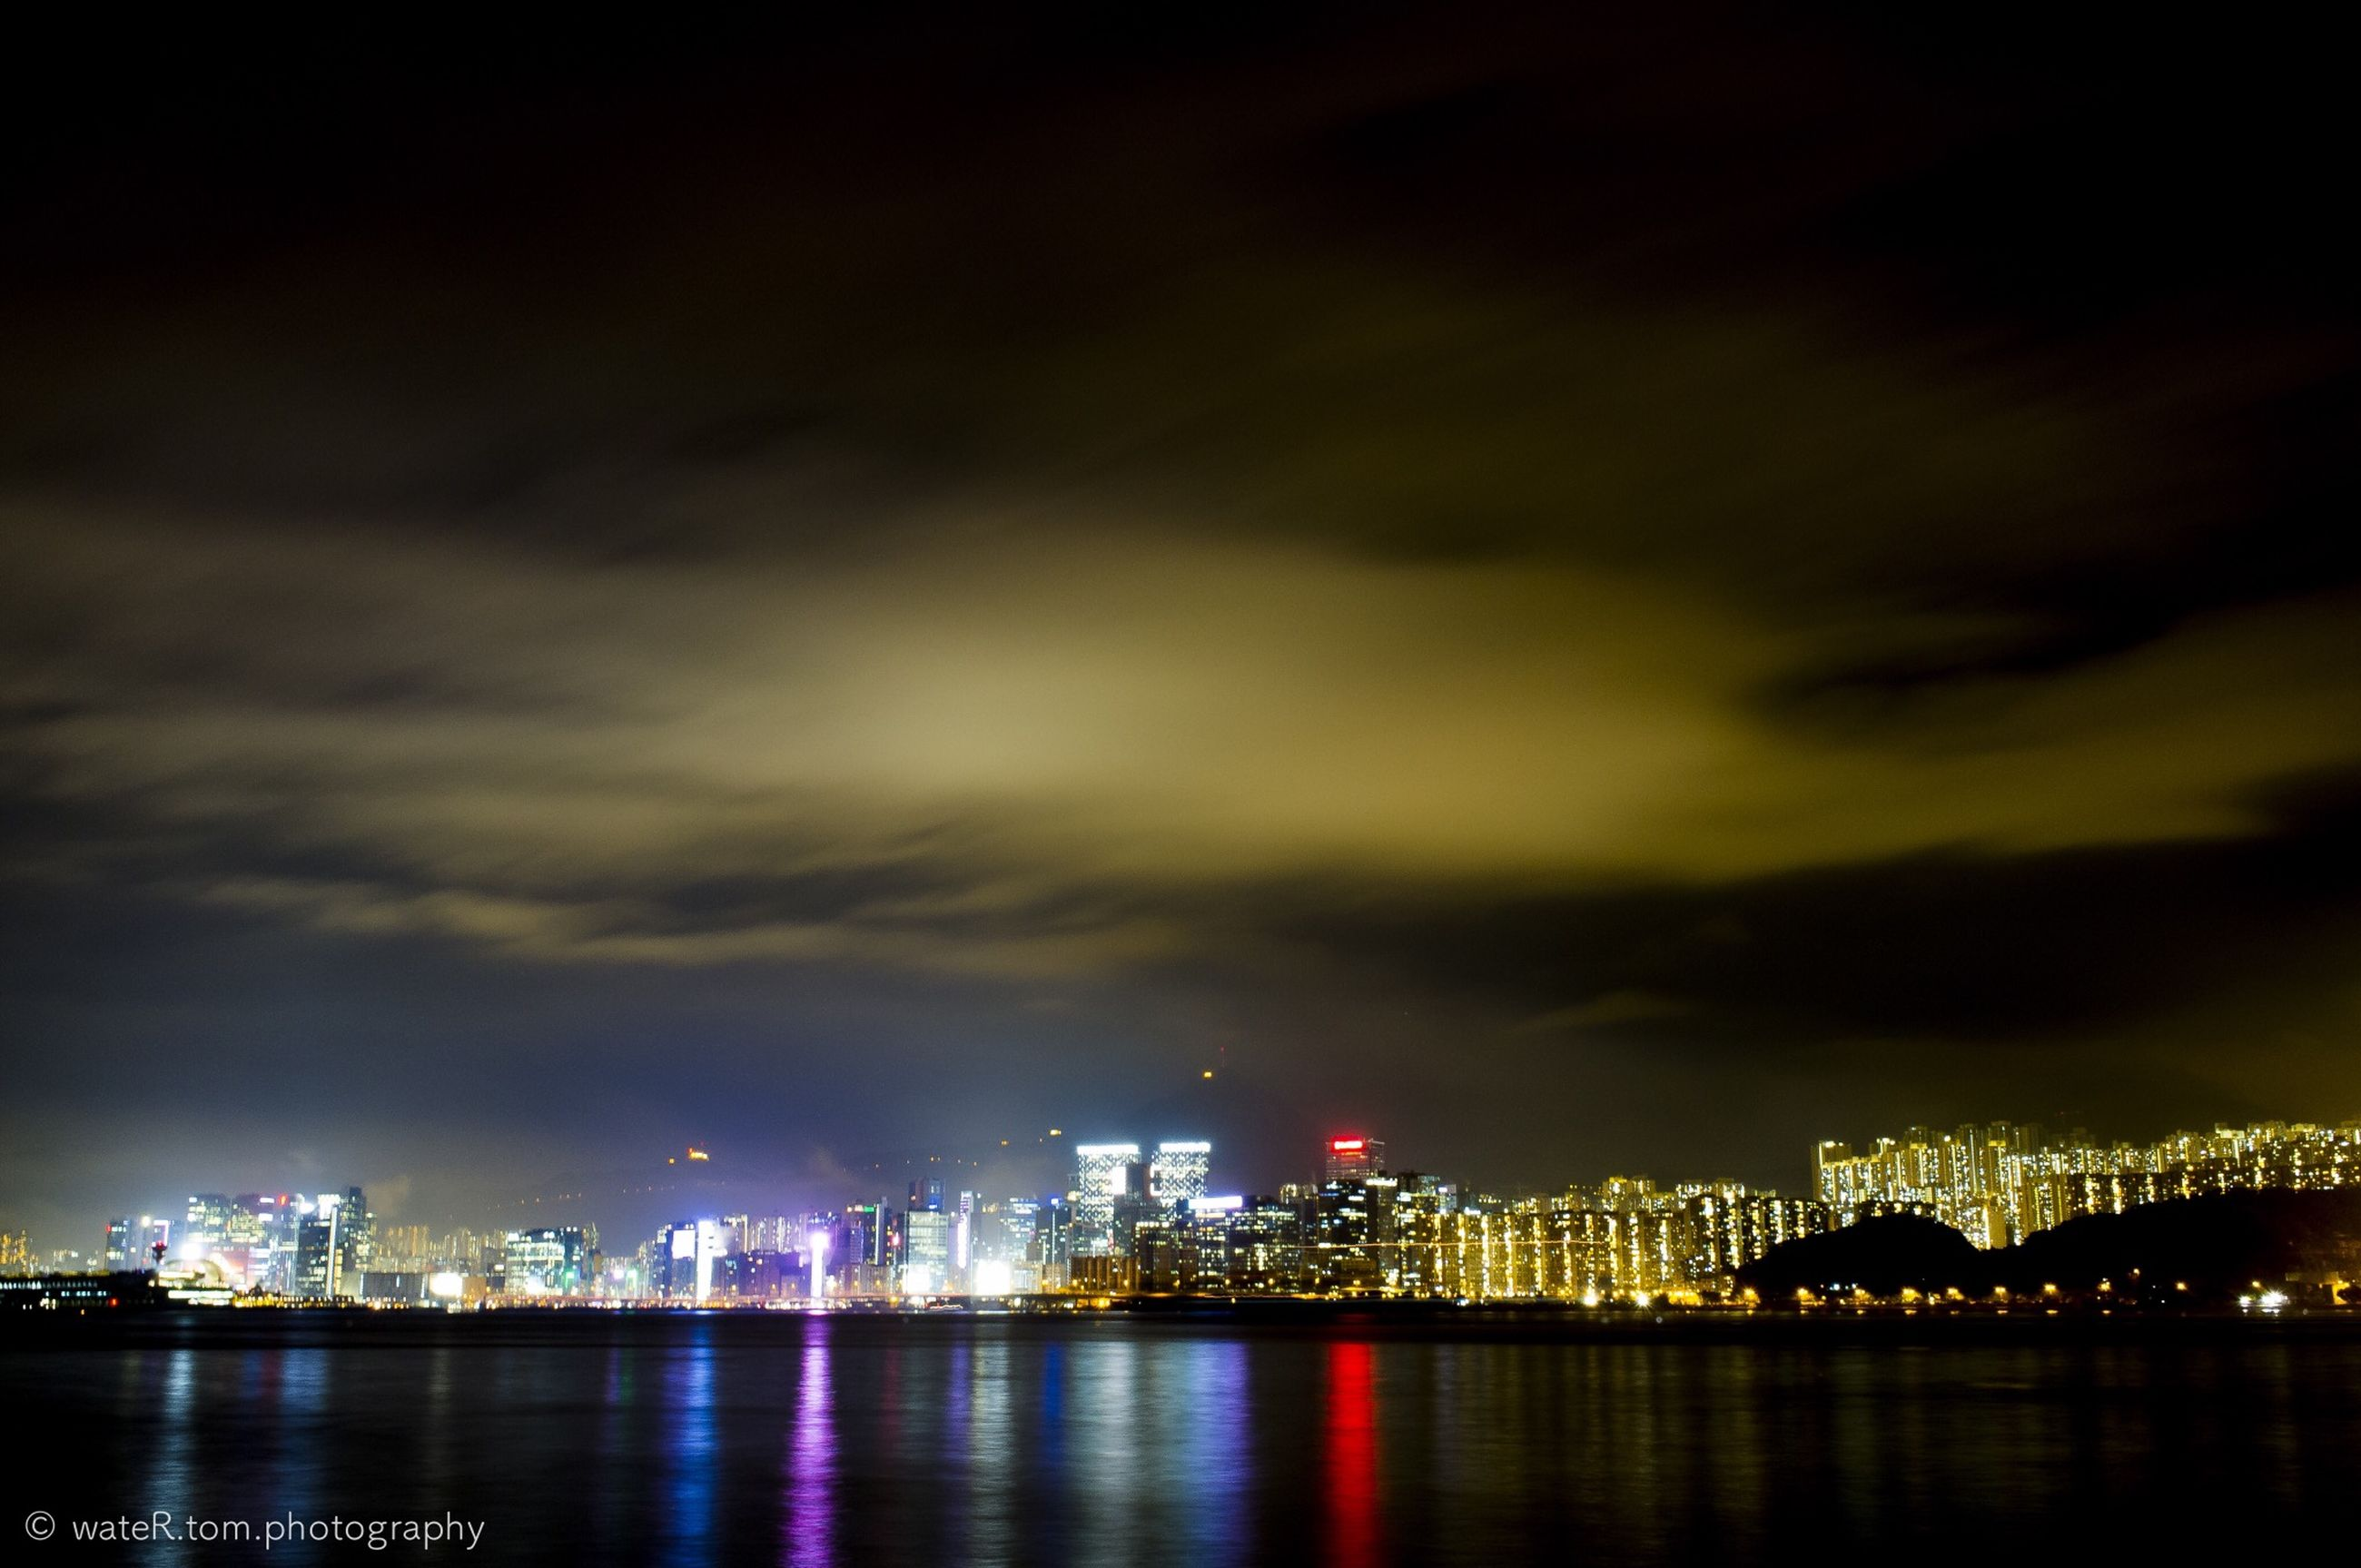 illuminated, night, water, waterfront, city, architecture, built structure, building exterior, sky, river, cityscape, reflection, urban skyline, cloud - sky, sea, skyscraper, dusk, outdoors, no people, bridge - man made structure